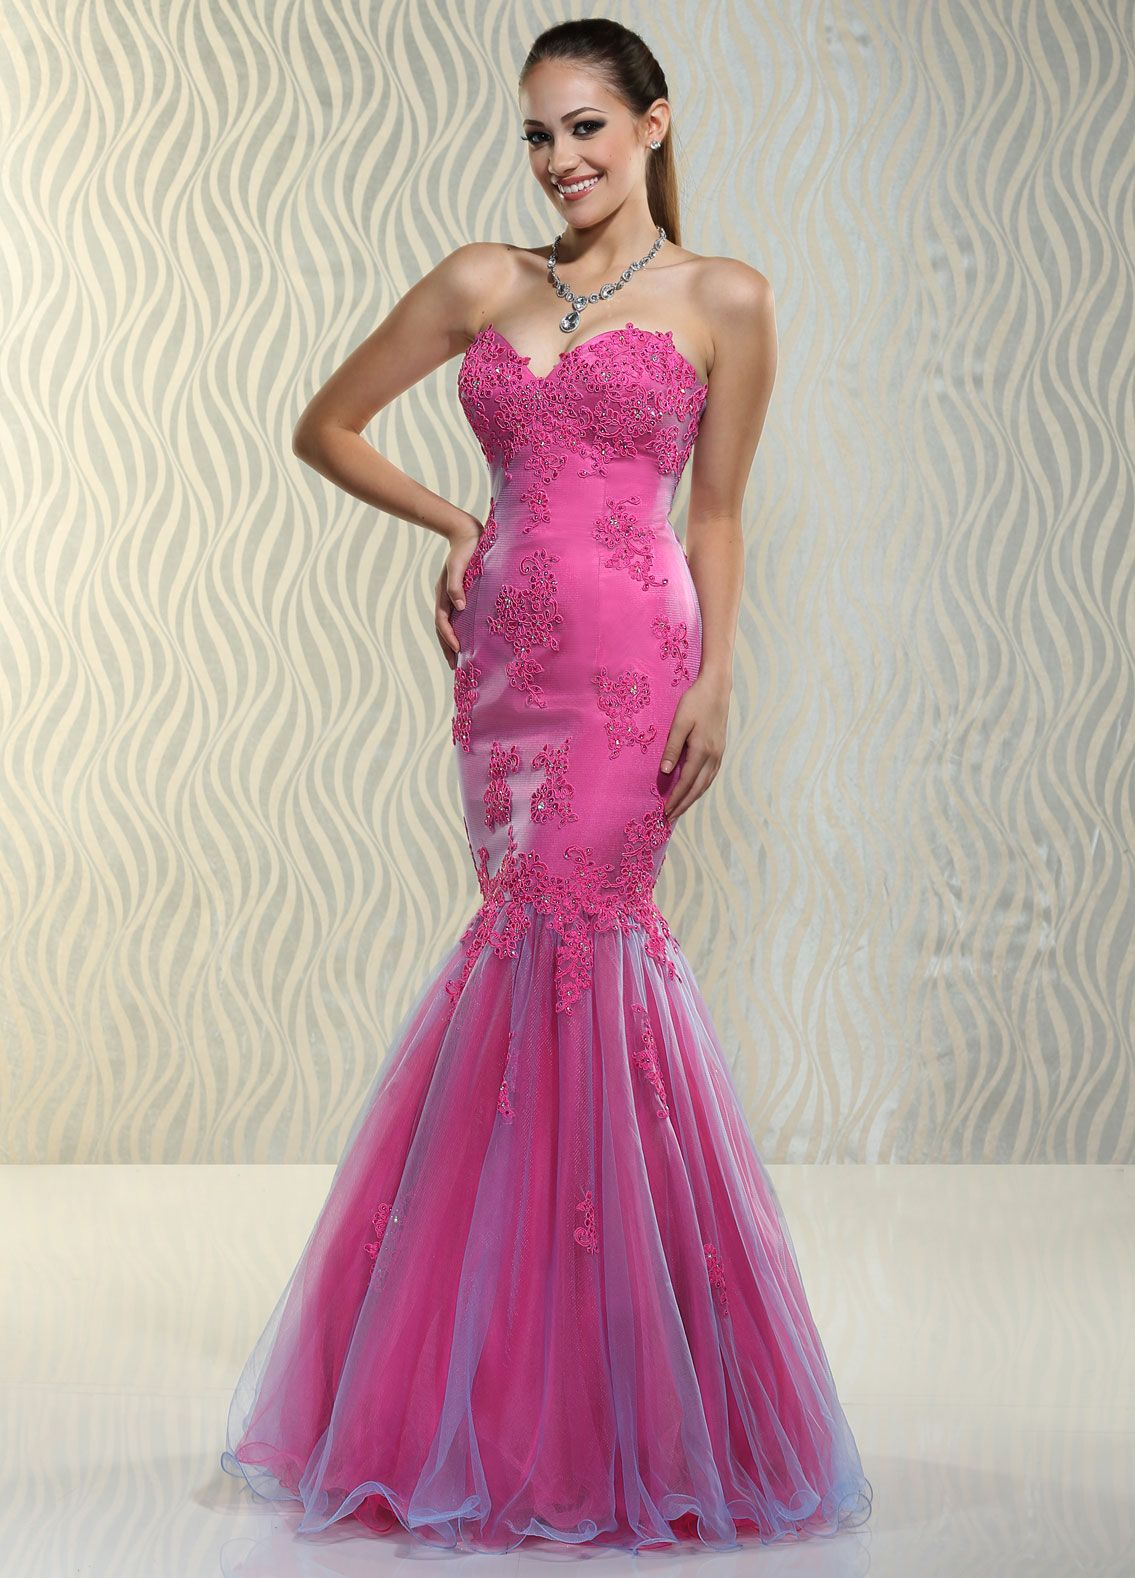 Prom Gowns by Xcite Prom | Things to Wear | Pinterest | Prom, Gowns ...